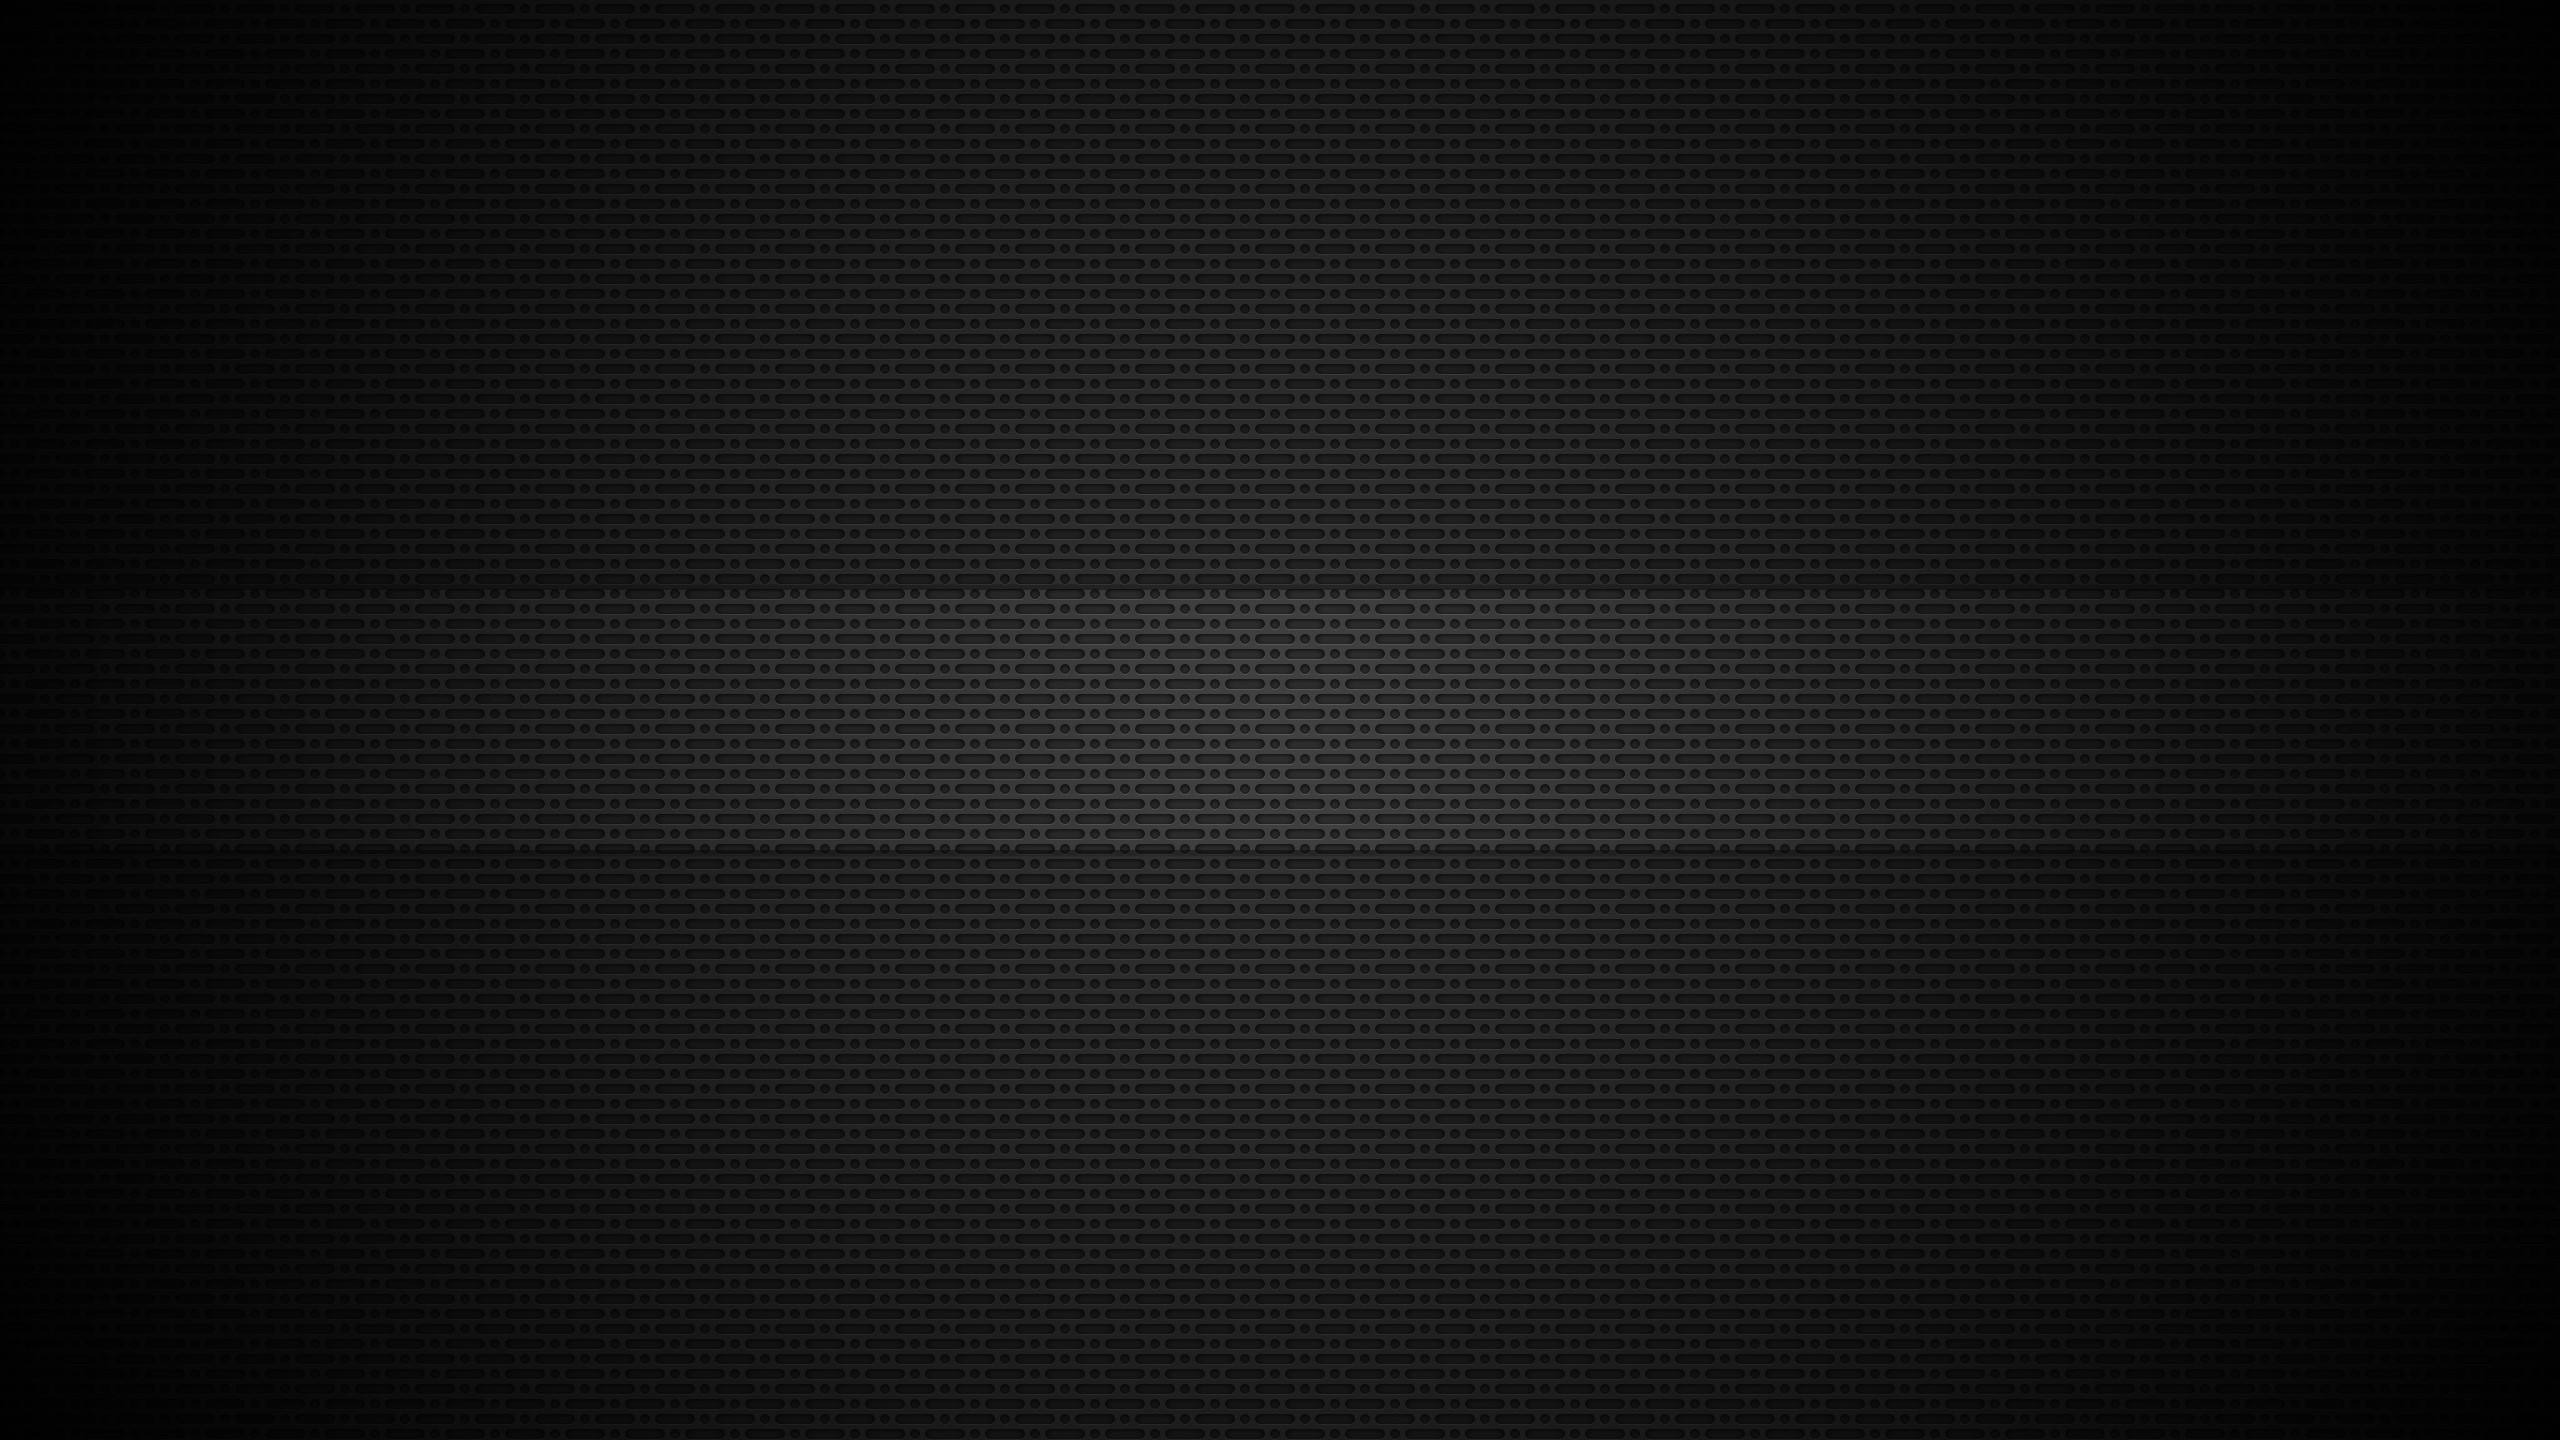 Youtube Wallpaper 2048x1152 (89+ Images